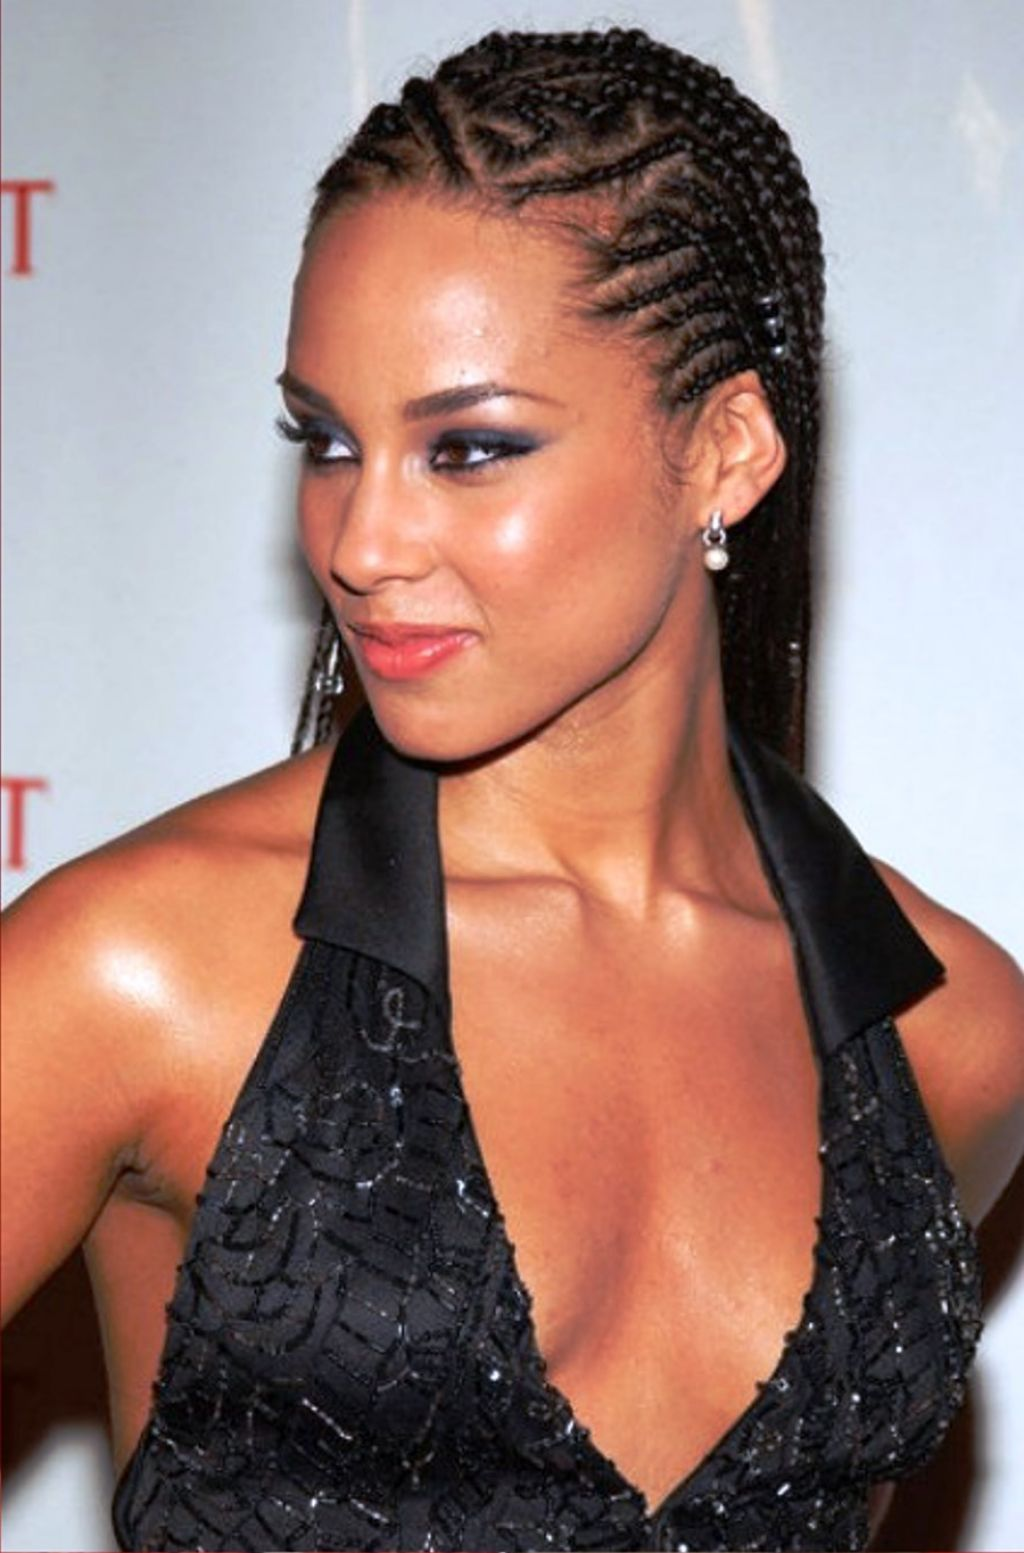 Alicia Keys Cornrow Braid Hairstyle Alicia Keys Cornrow Hairstyles Hairstyle Black African Women Cornrow Hairstyles Hair Styles Braids For Black Hair